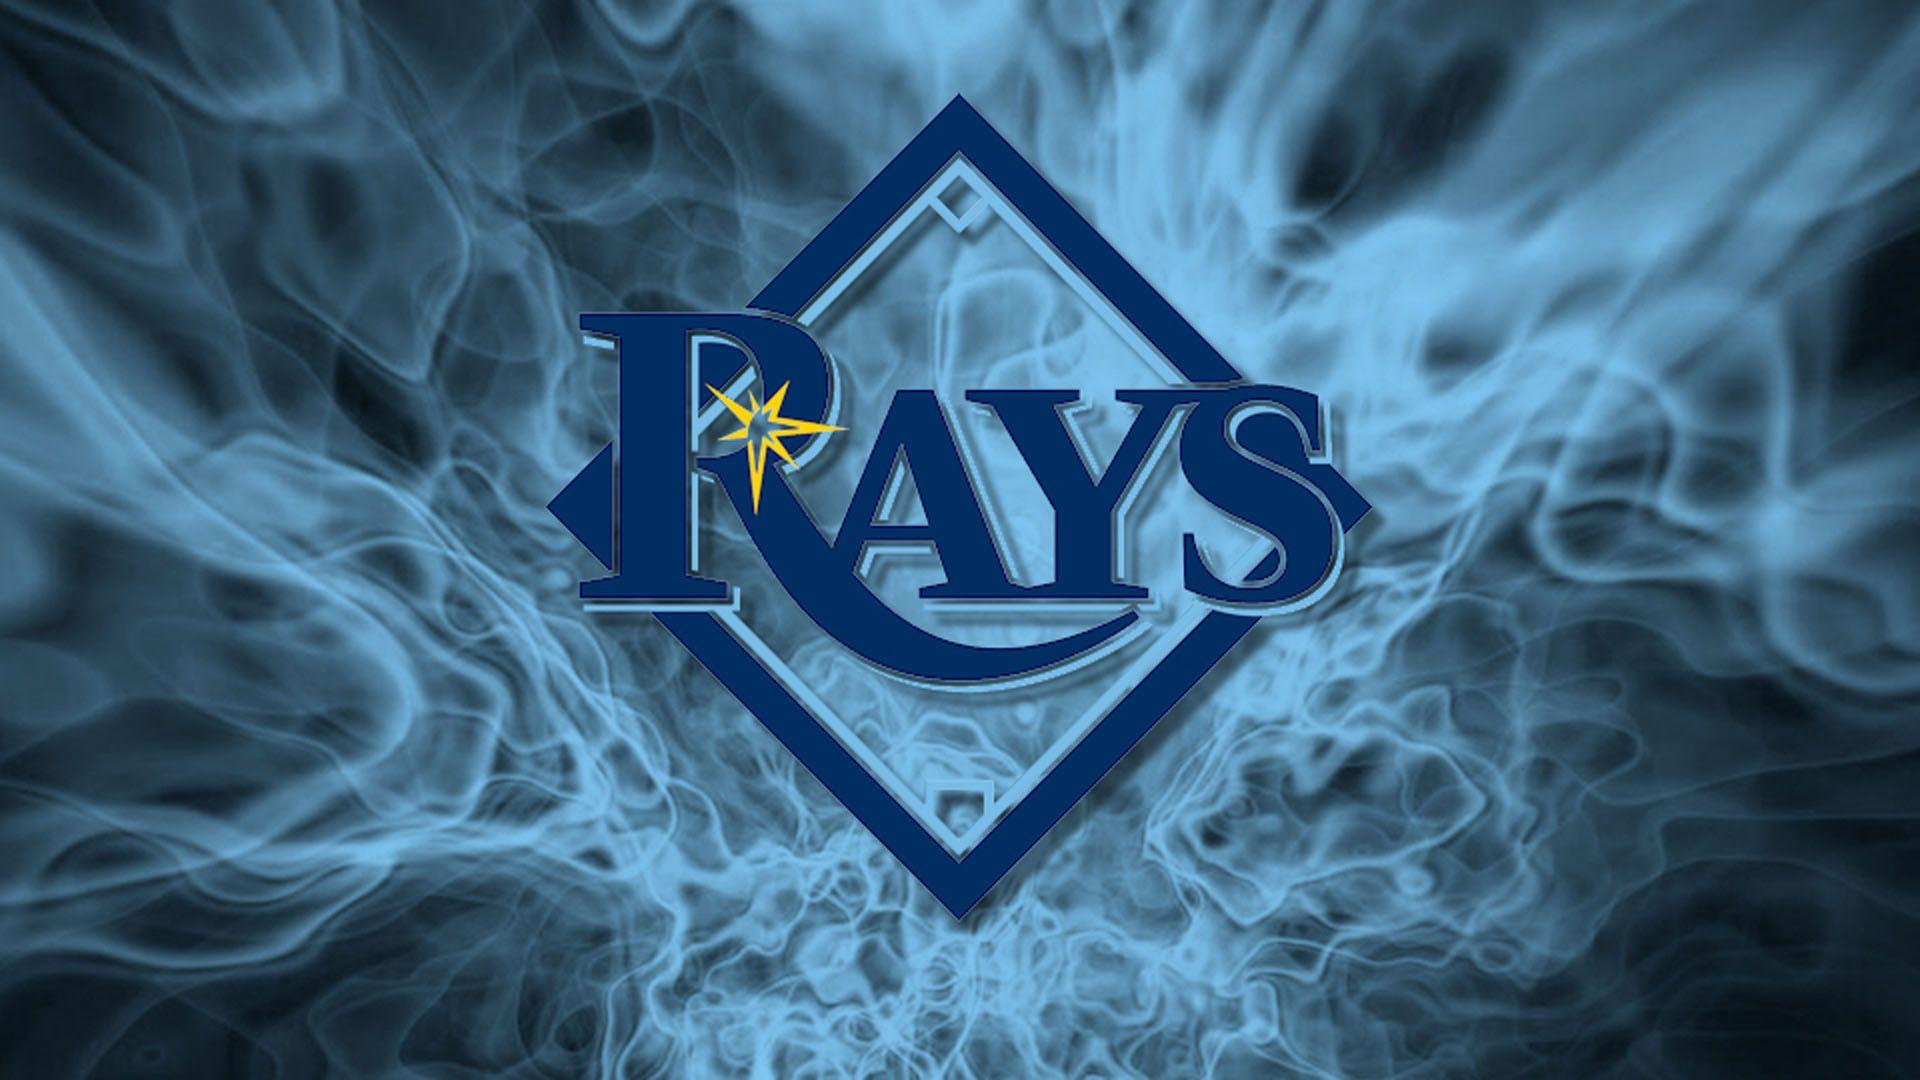 tampa bay rays wallpapers top free tampa bay rays backgrounds wallpaperaccess tampa bay rays wallpapers top free